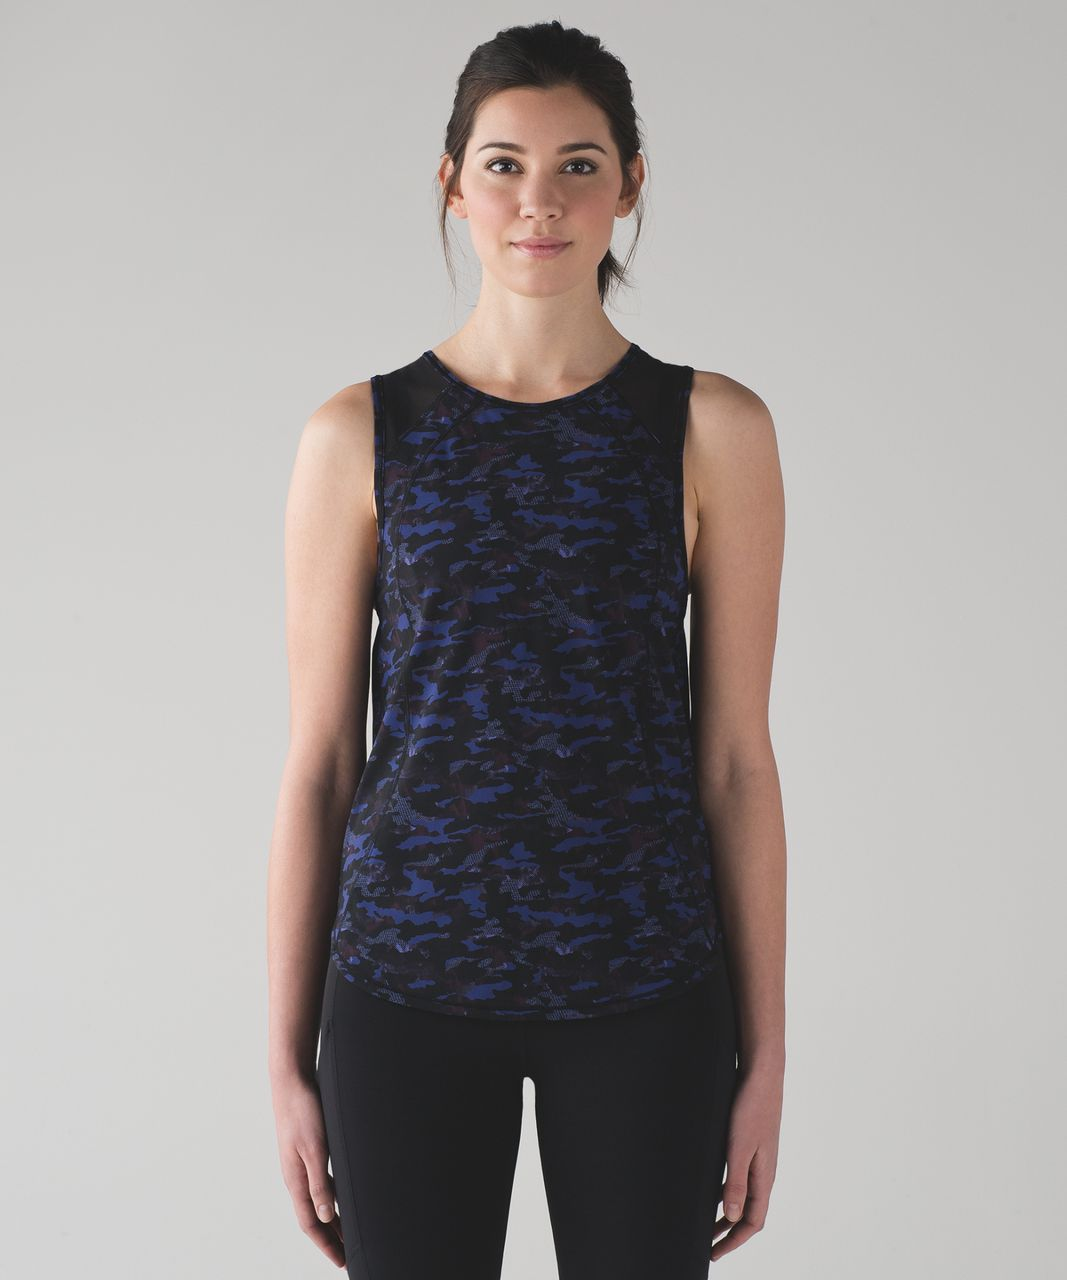 Lululemon Sculpt Tank - Mini Hounds Camo Emperor Blue Black